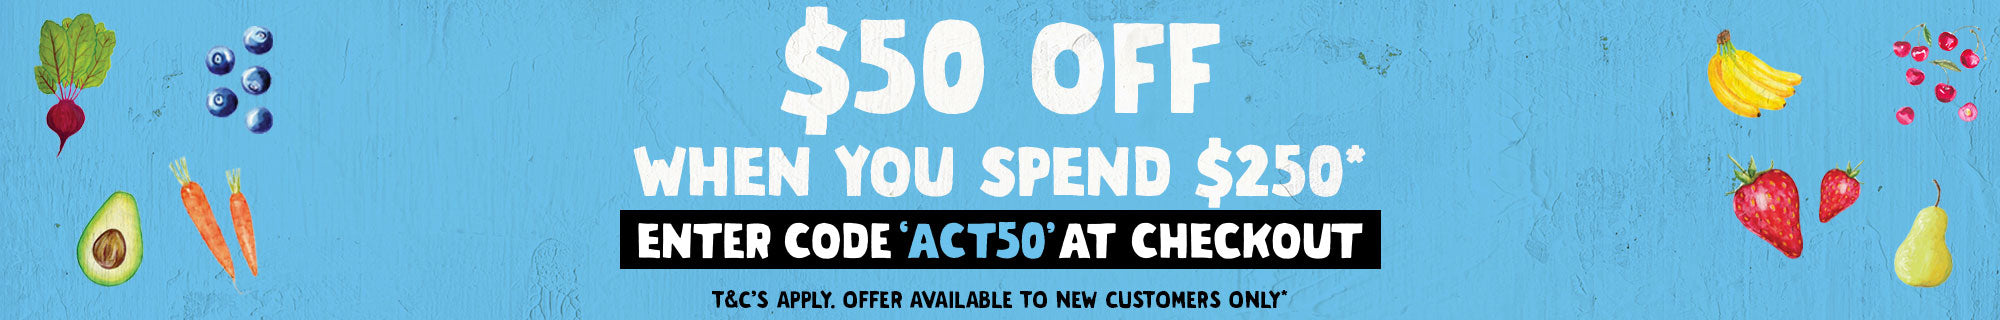 ACT50 - Save 50 when you spend over 250